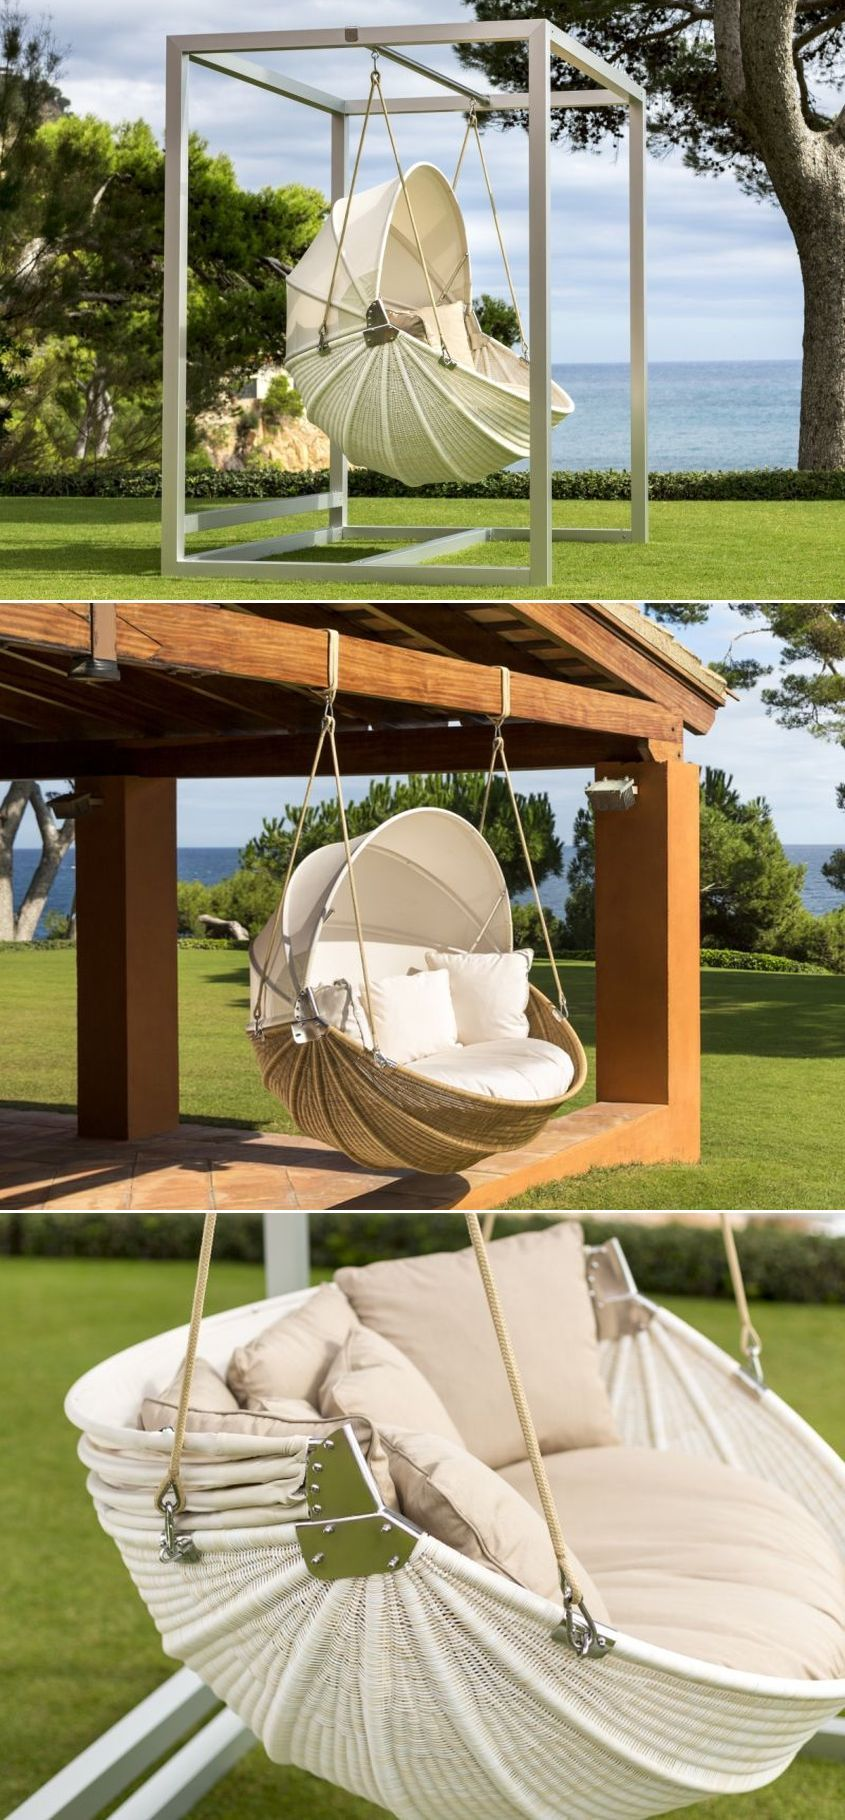 Armadillo swinging garden chair screams comfort and style